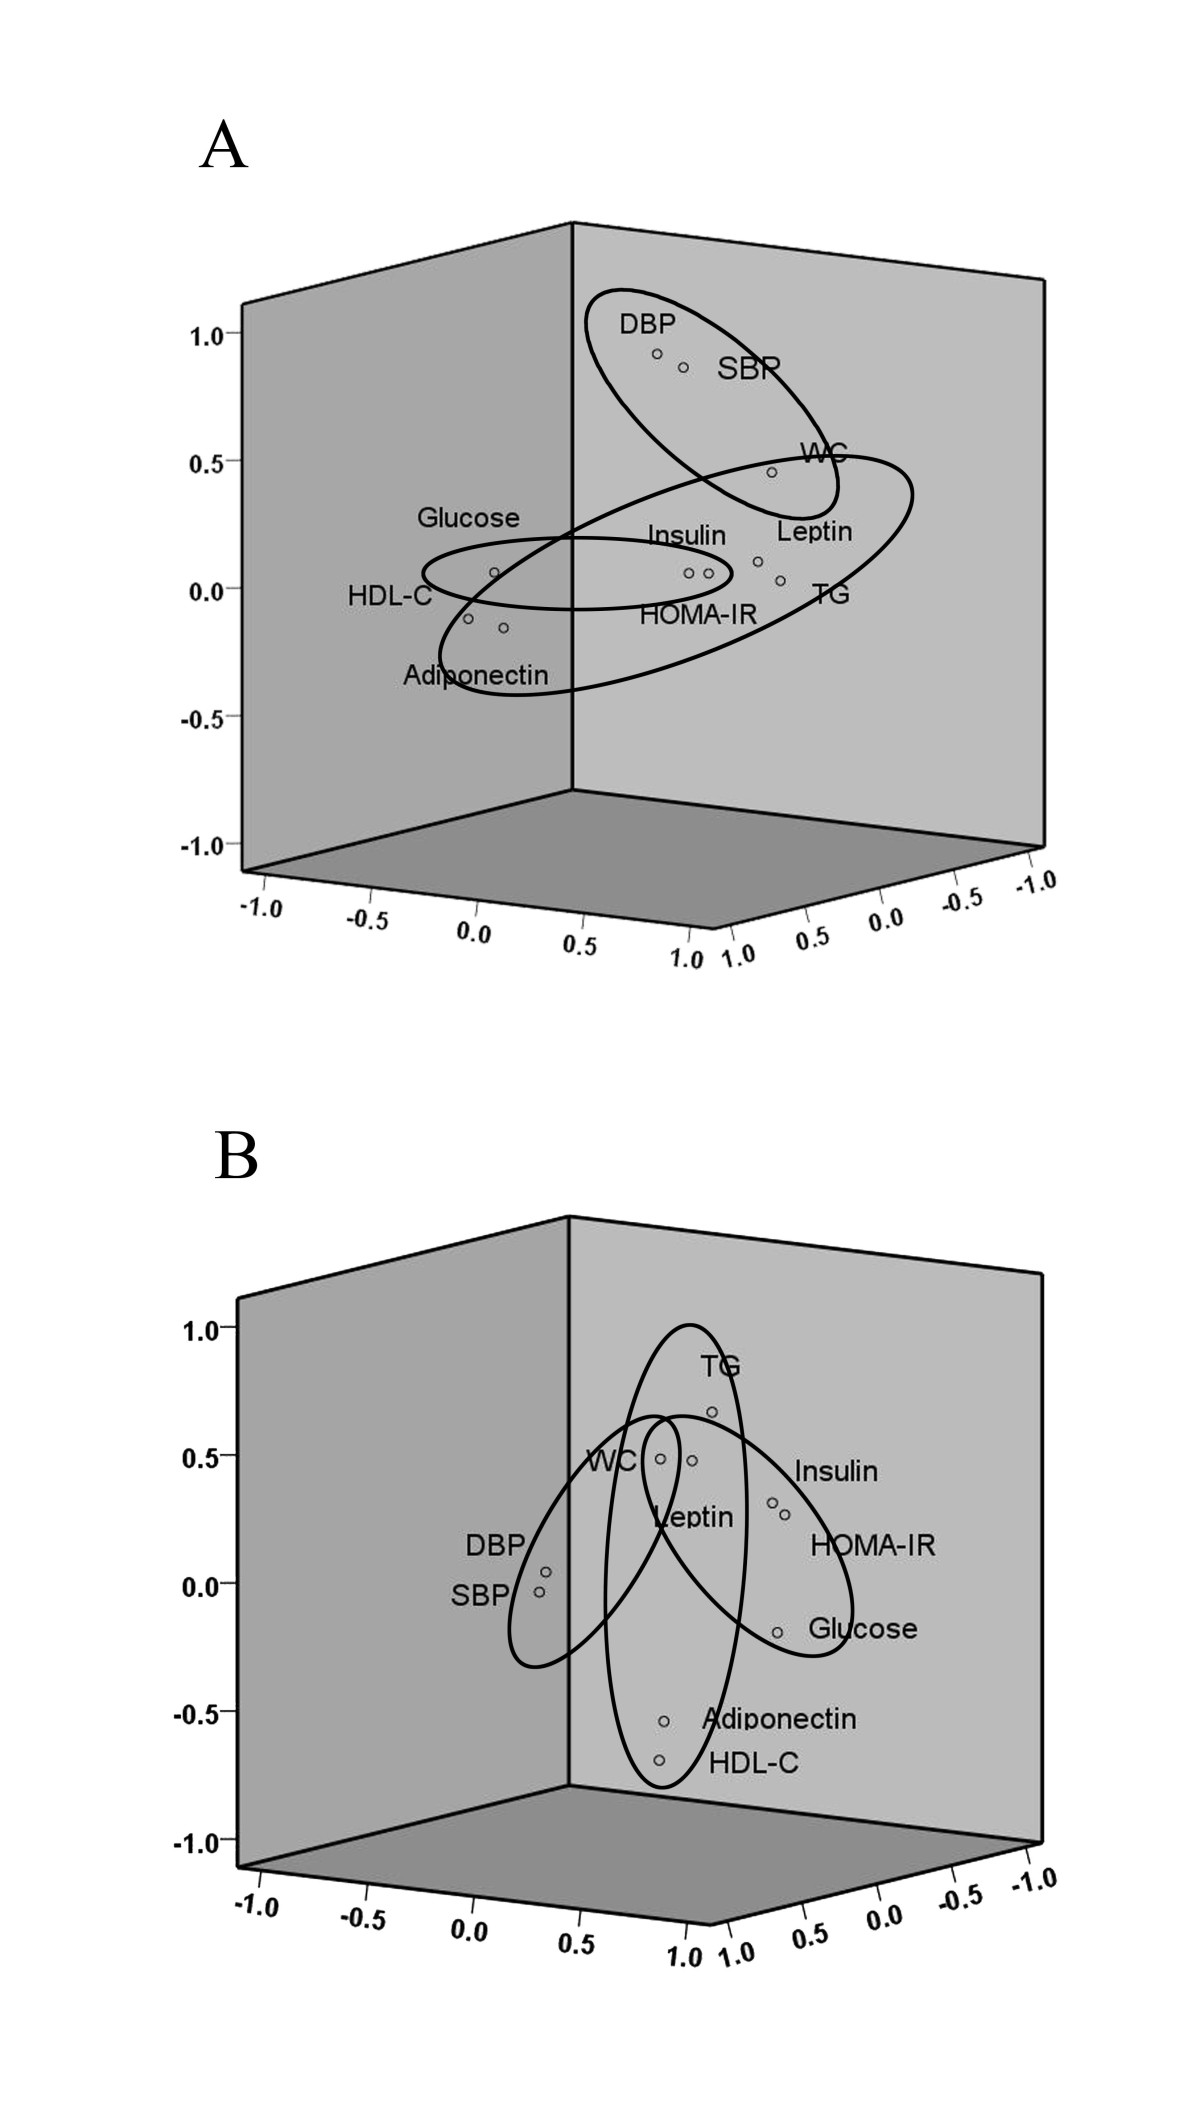 https://static-content.springer.com/image/art%3A10.1186%2F1471-2458-13-249/MediaObjects/12889_2012_Article_5153_Fig1_HTML.jpg